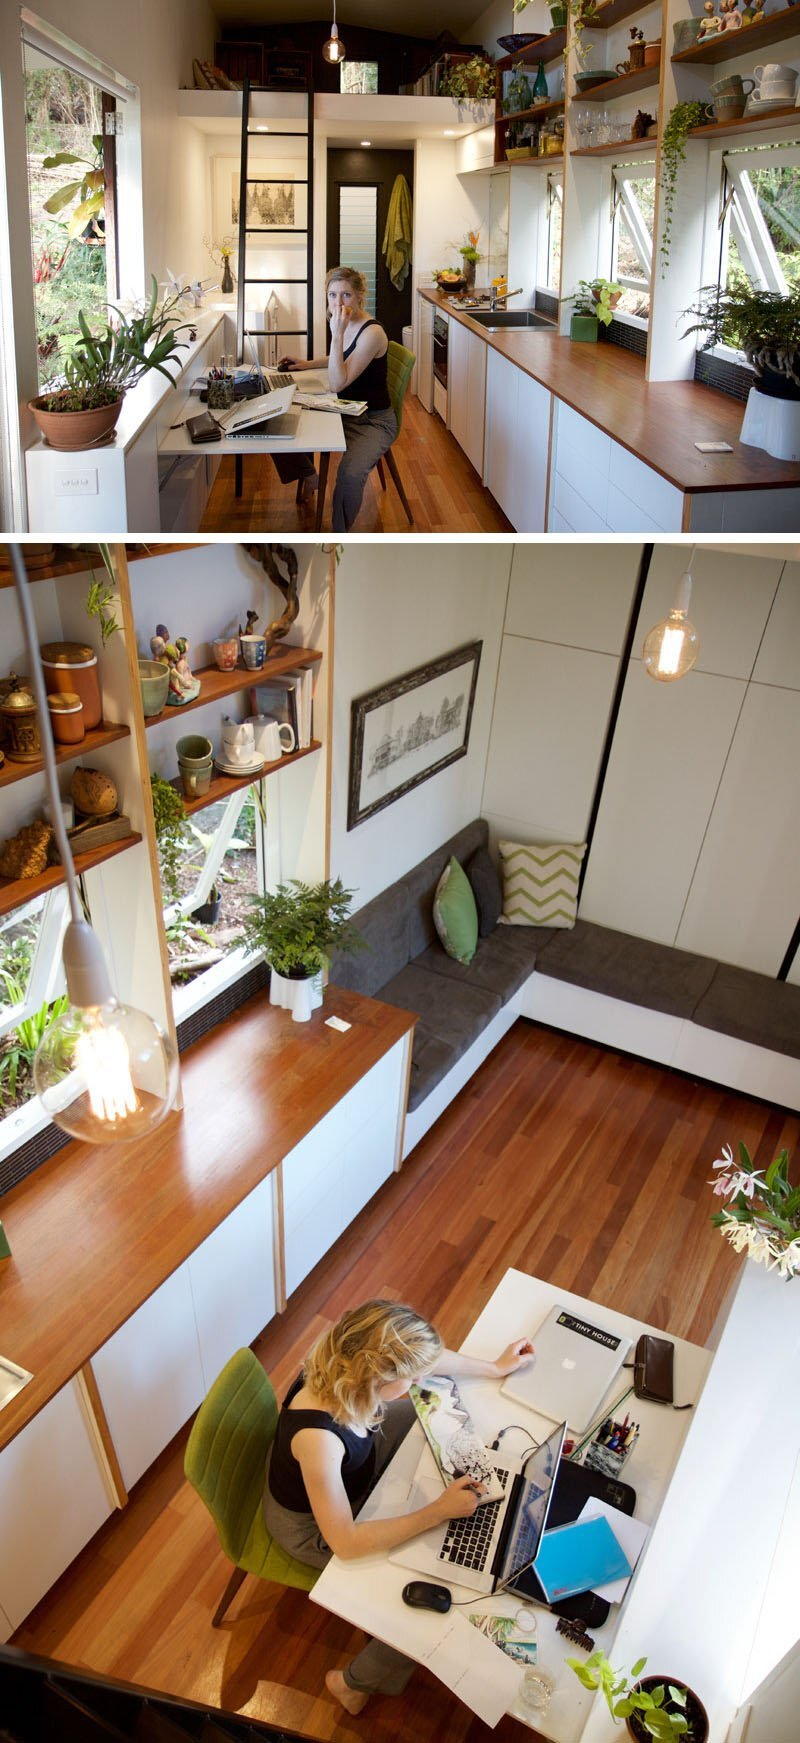 The Pods - Greg Thornton - The Tiny House Company - Australia - Kitchen and Study - Humble Homes